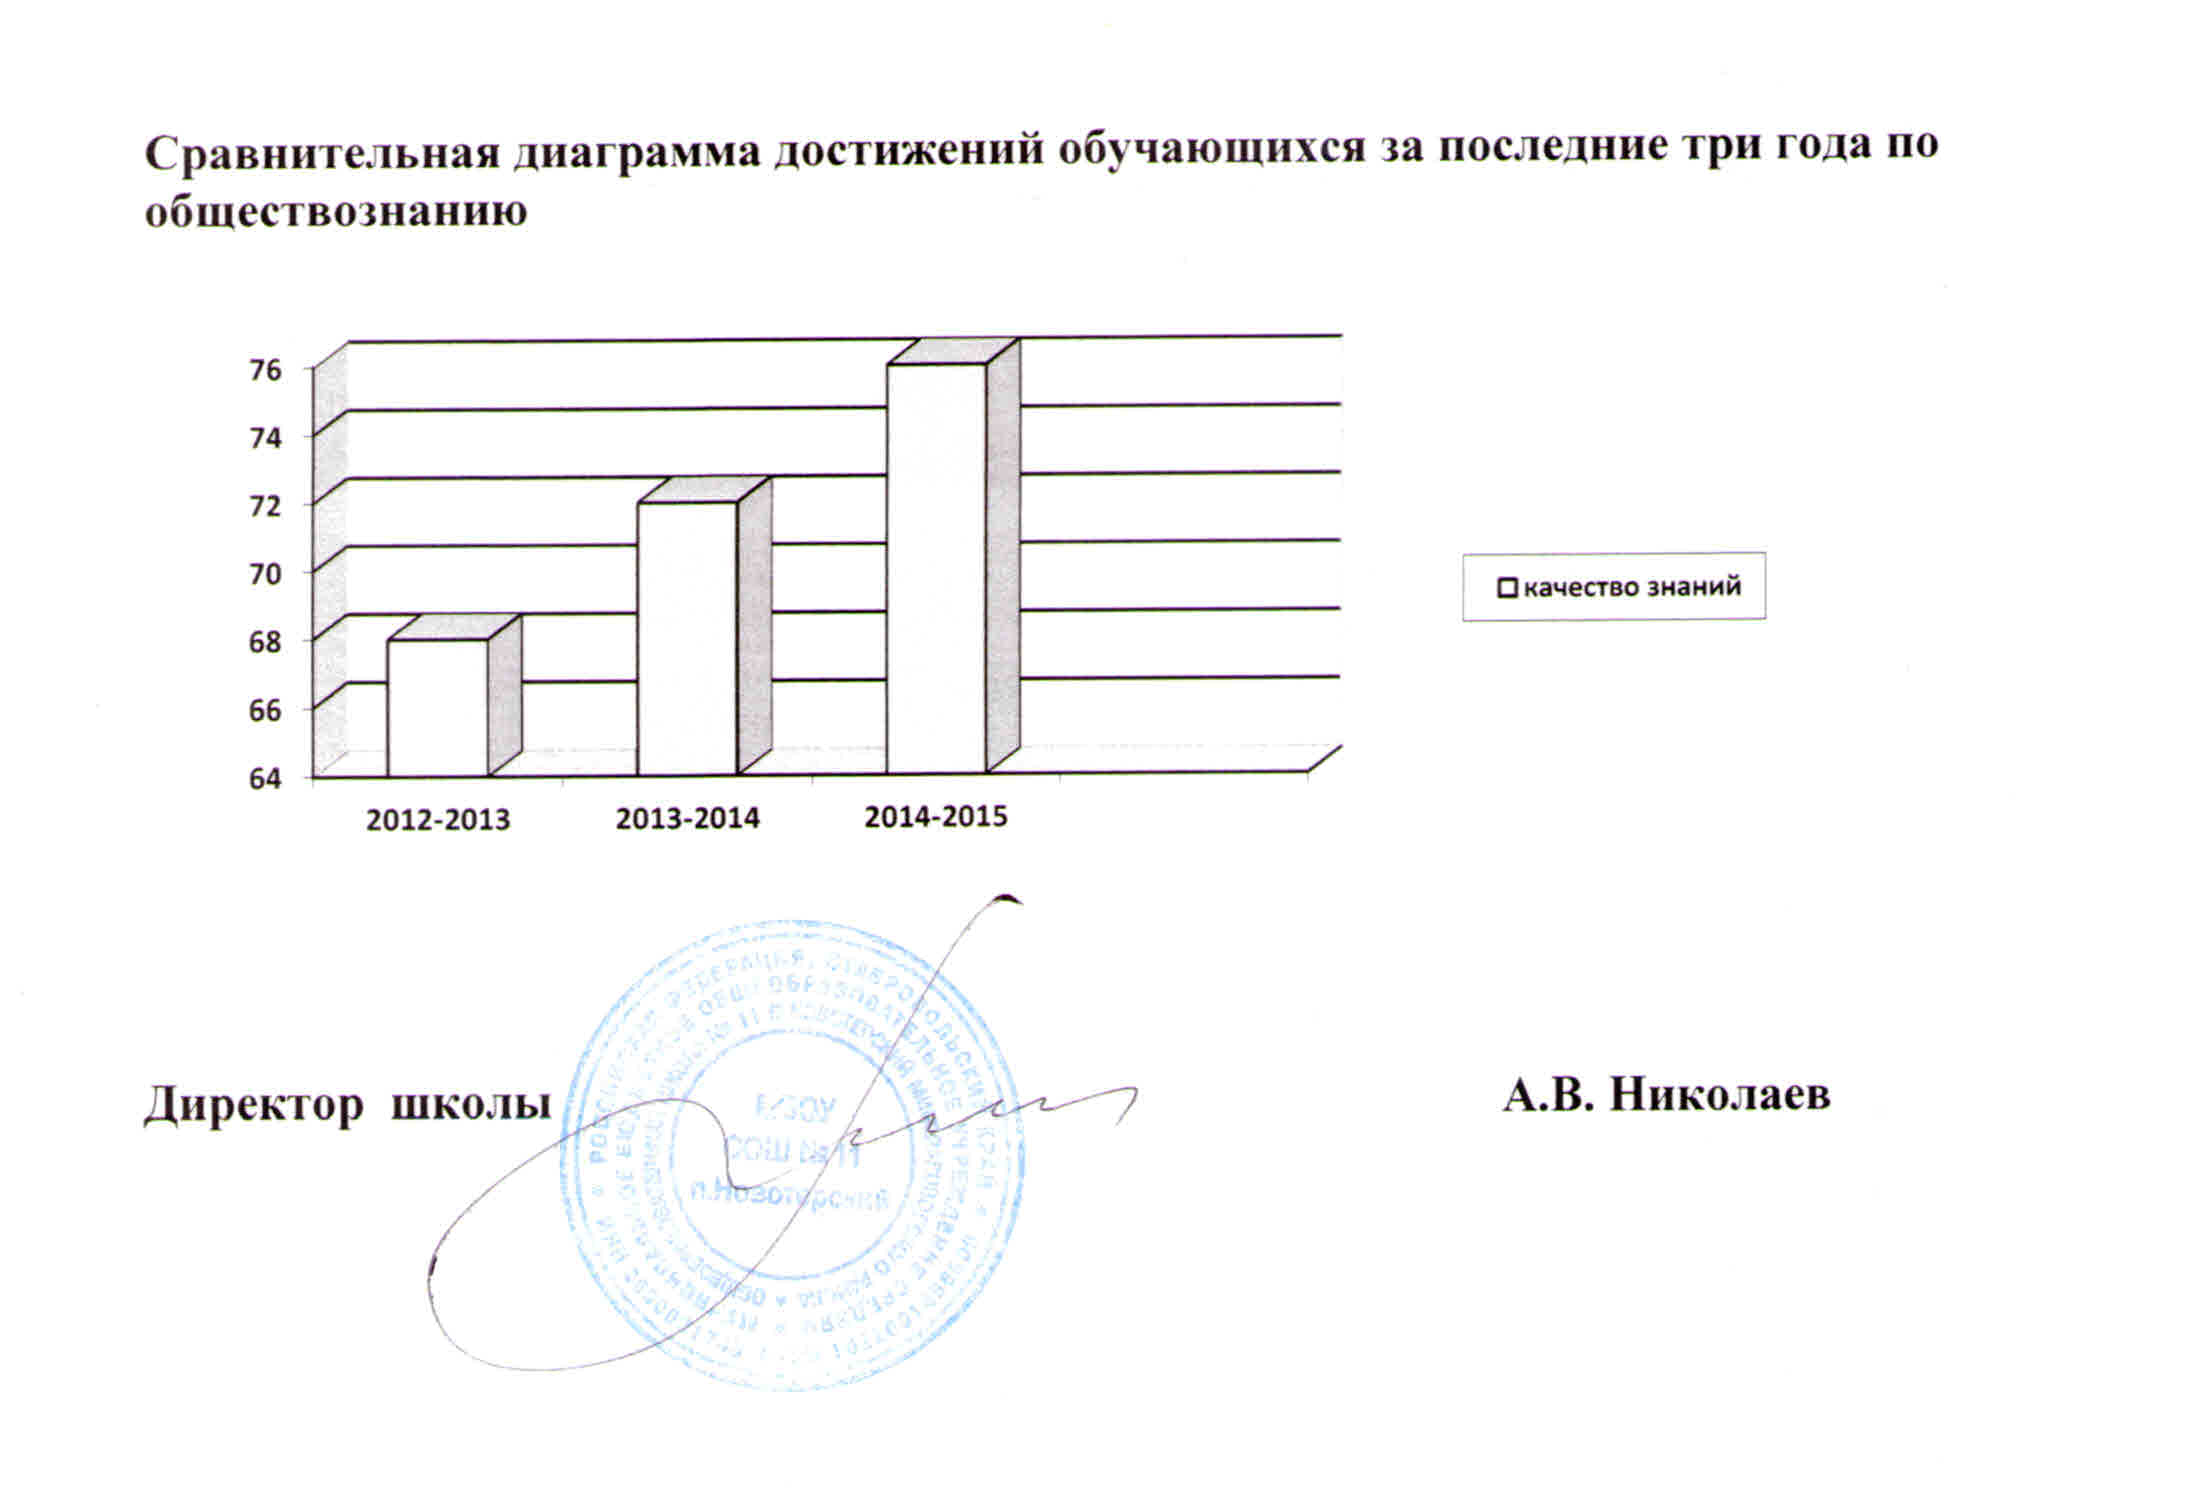 C:\Users\Сергей\Desktop\Document_19.jpg